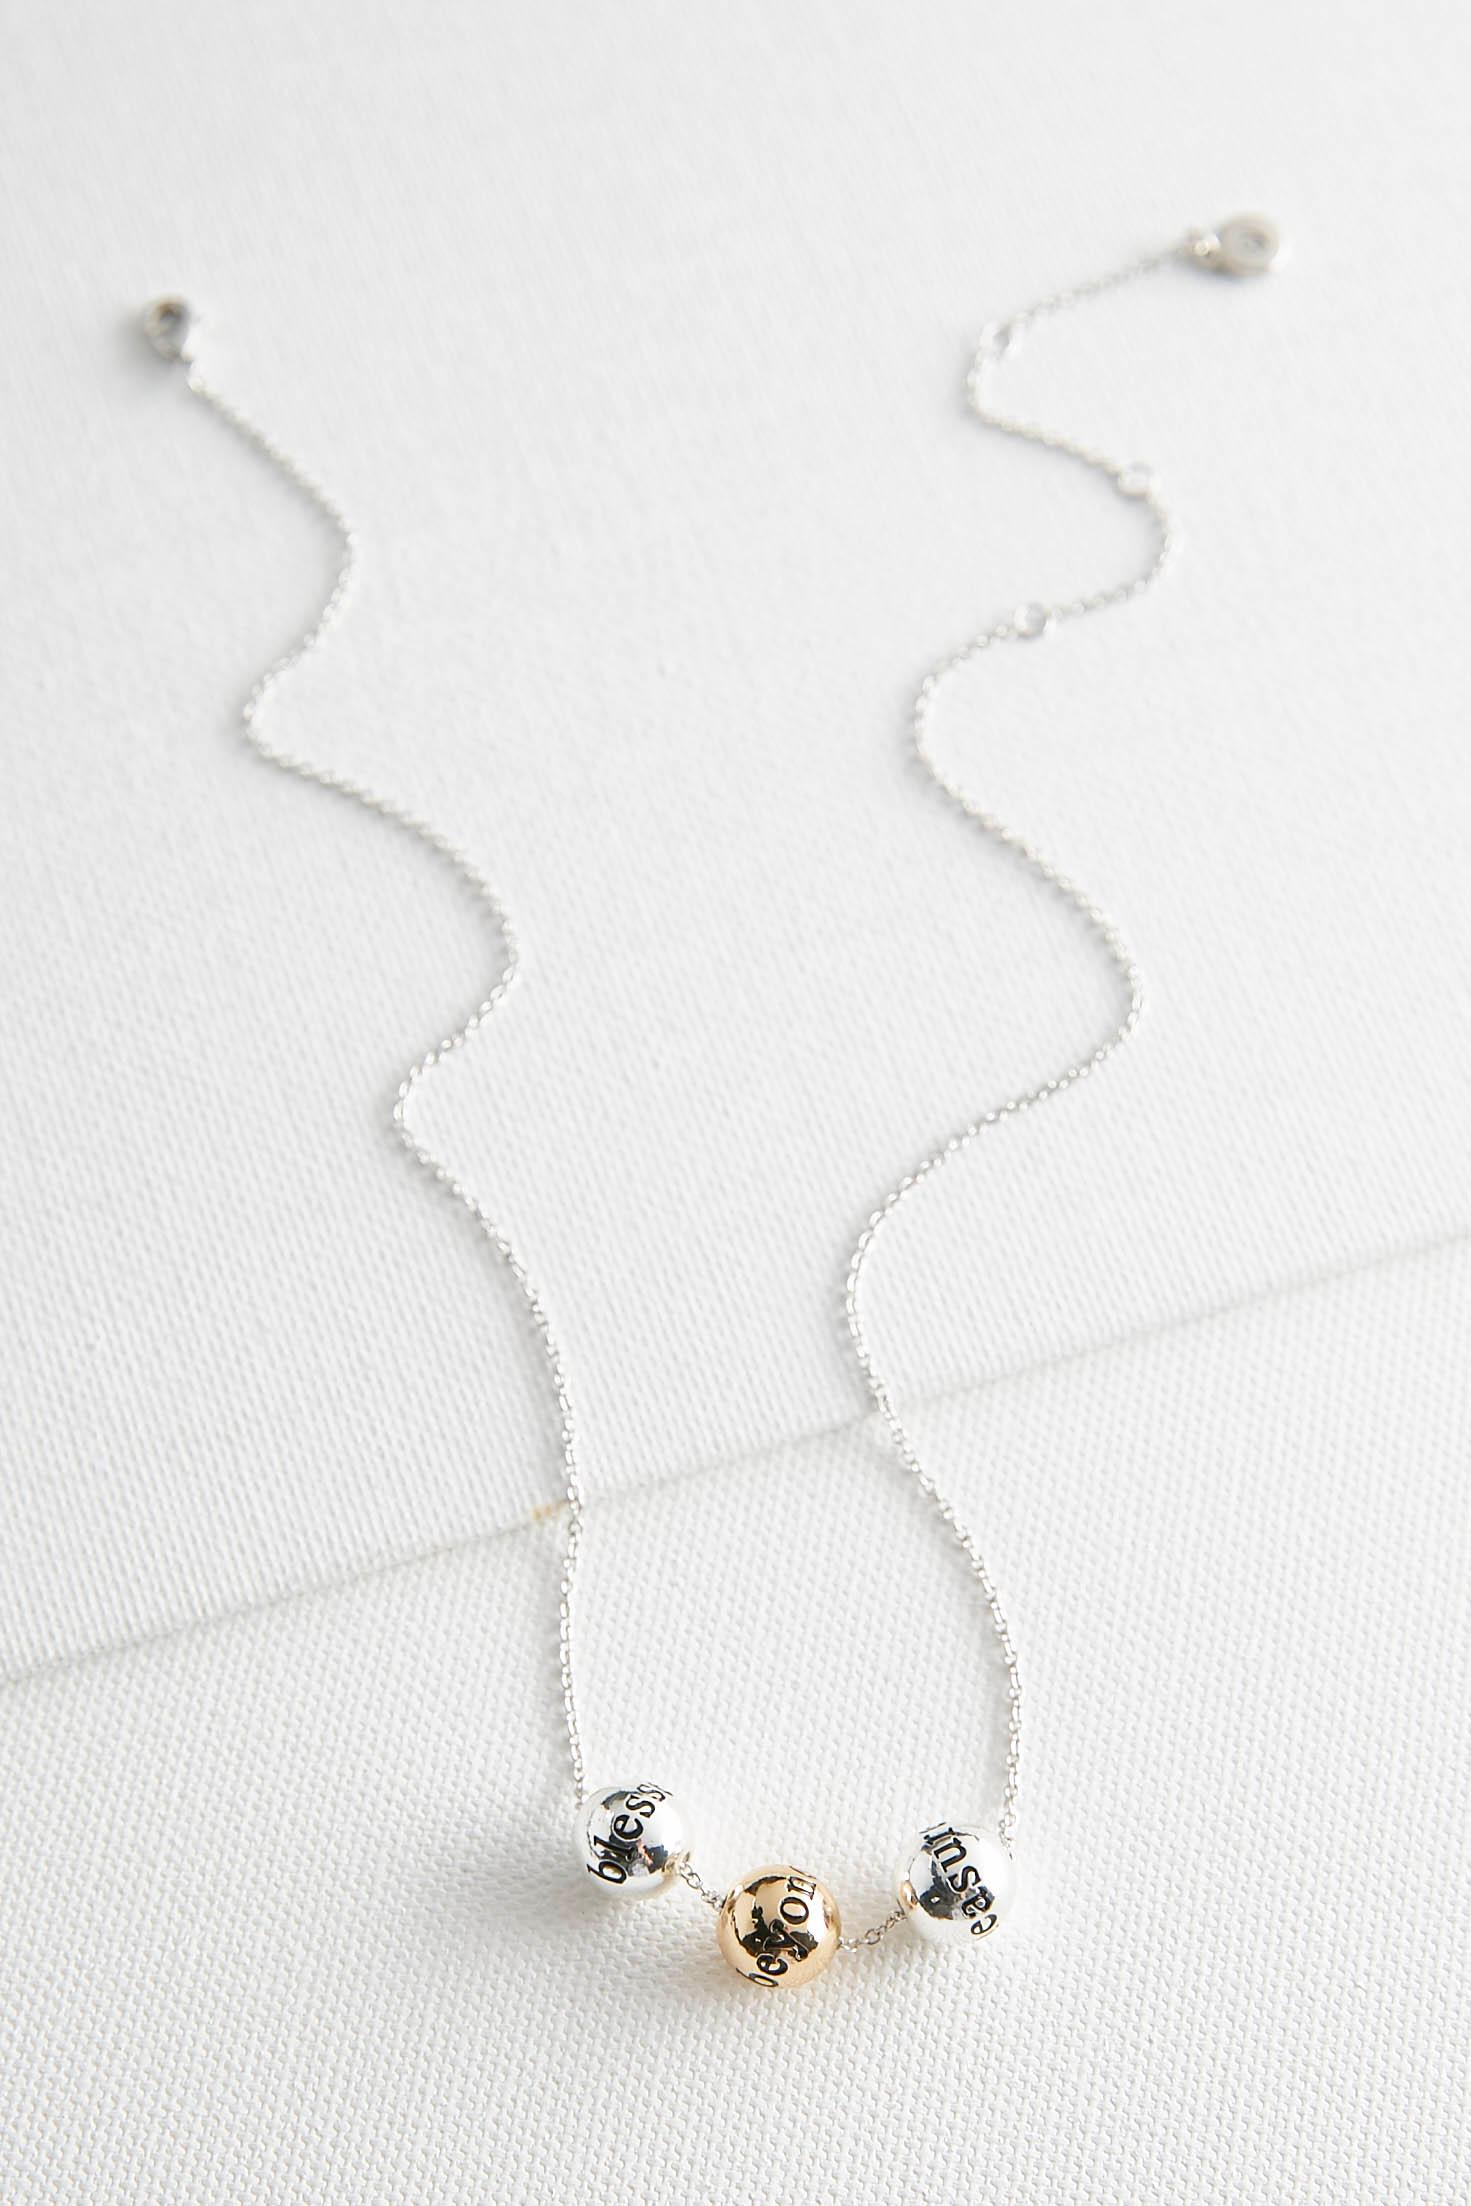 Blessed Beyond Measure Necklace